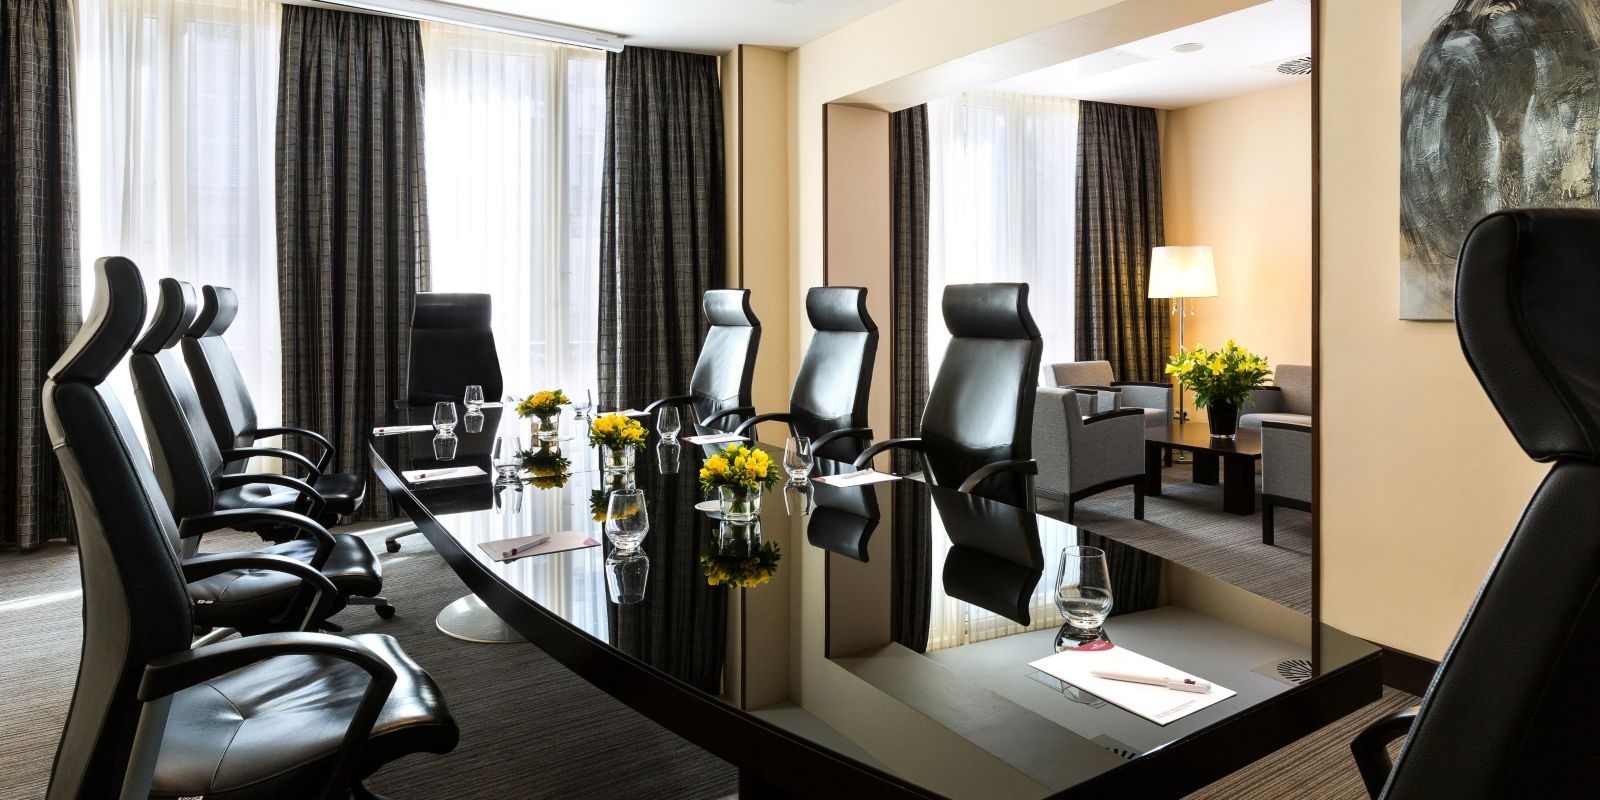 Crowne plaza paris republique hotel meeting rooms for rent for Peripherique exterieur paris